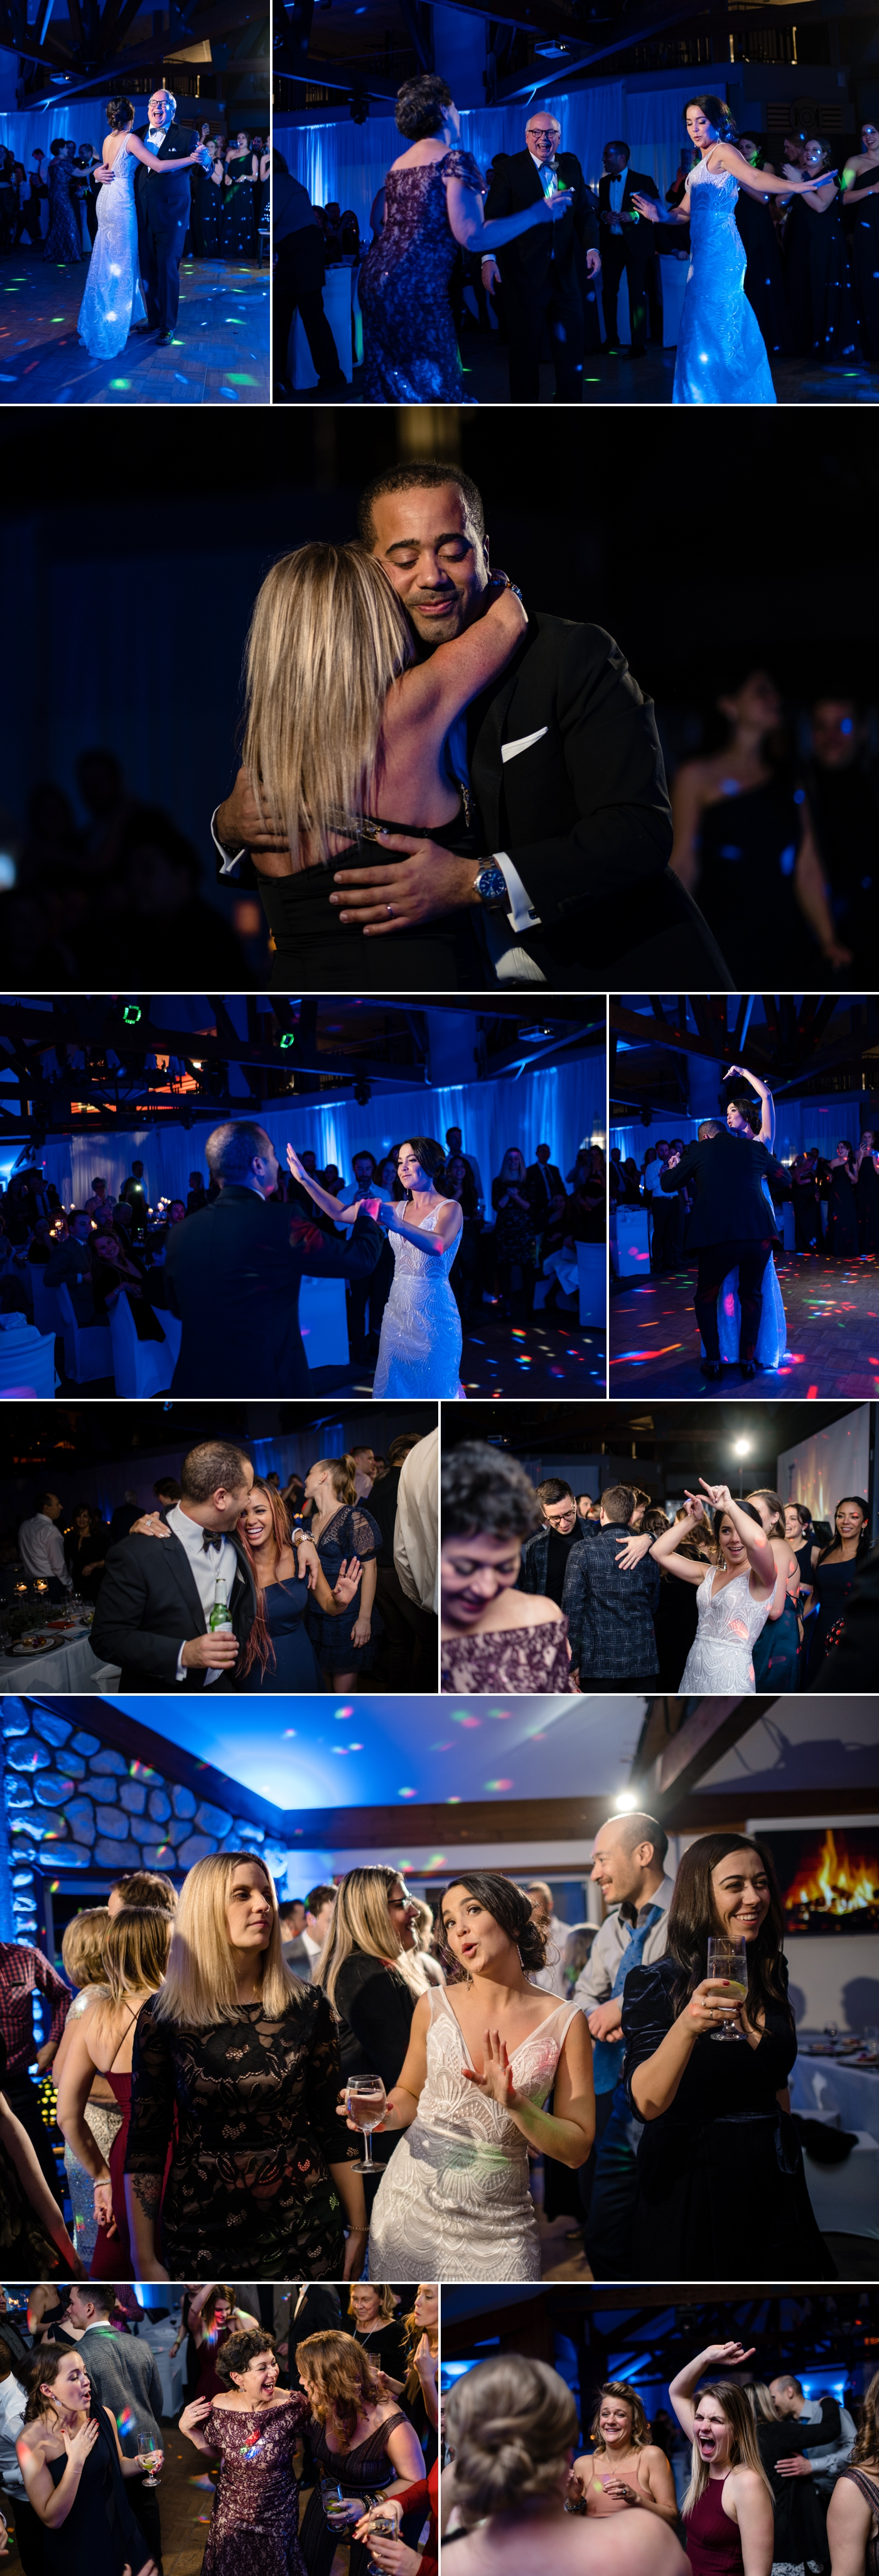 candid dance floor moments during a winter wedding reception at the grand manitou in mont tremblant quebec